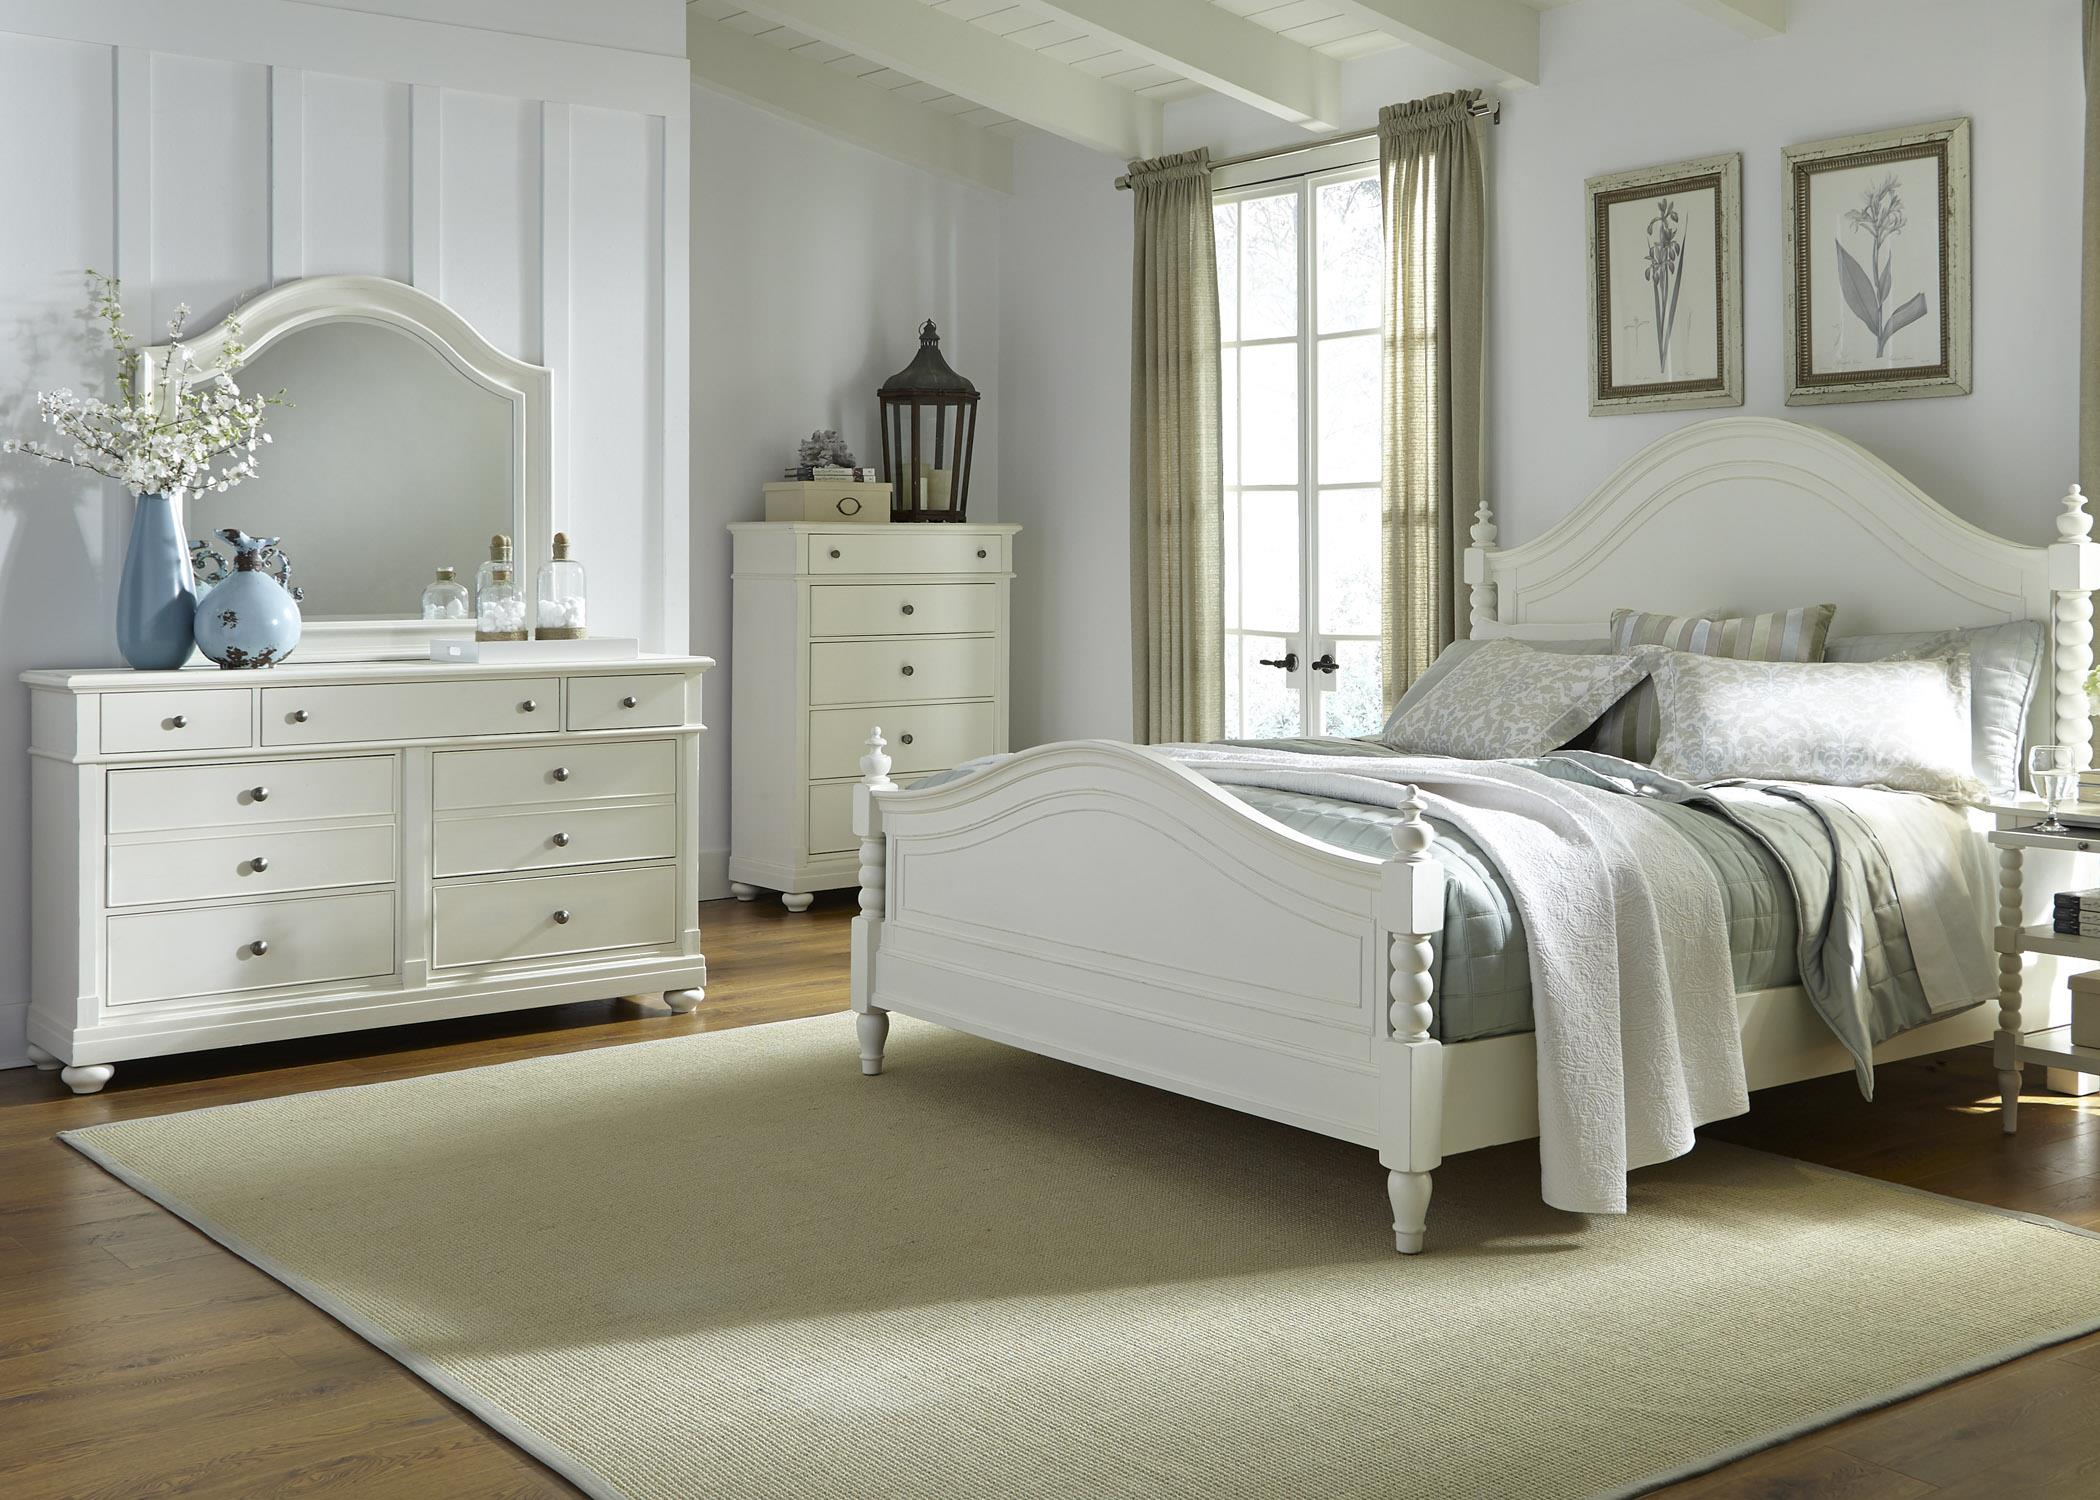 Liberty Furniture Harbor View Queen Bedroom Group - Item Number: 631-BR-QPSDMC